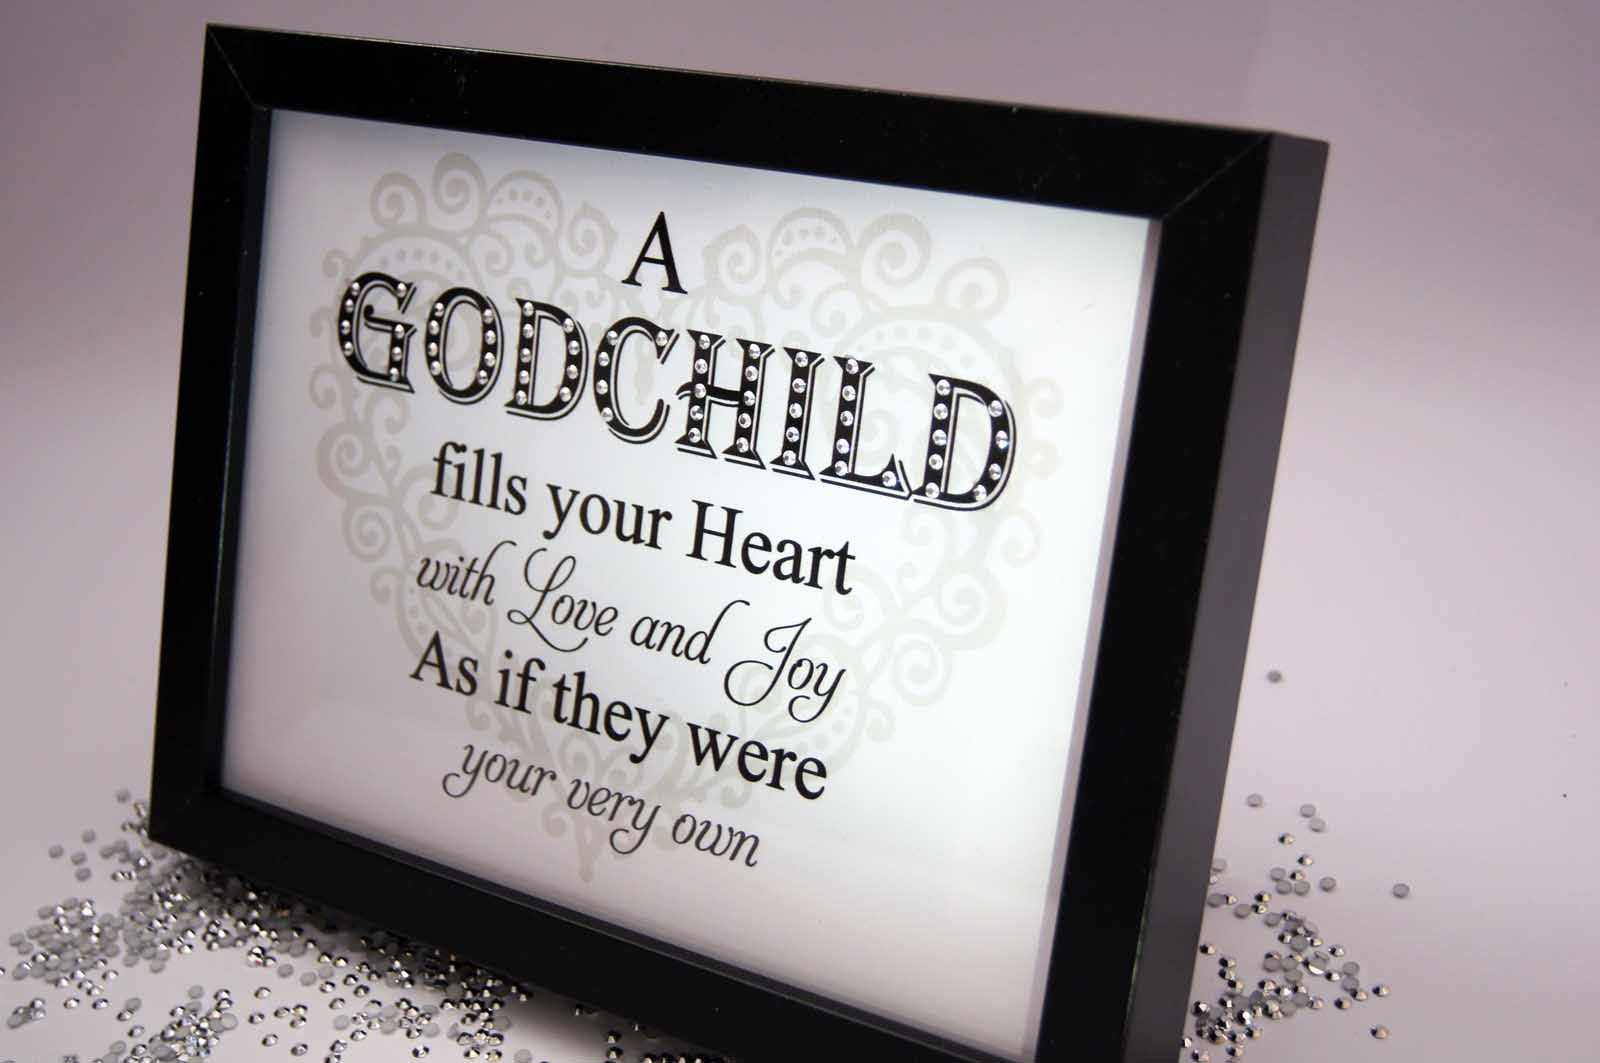 A Godchild Fills Your Heart, Sparkle Word Art Pictures